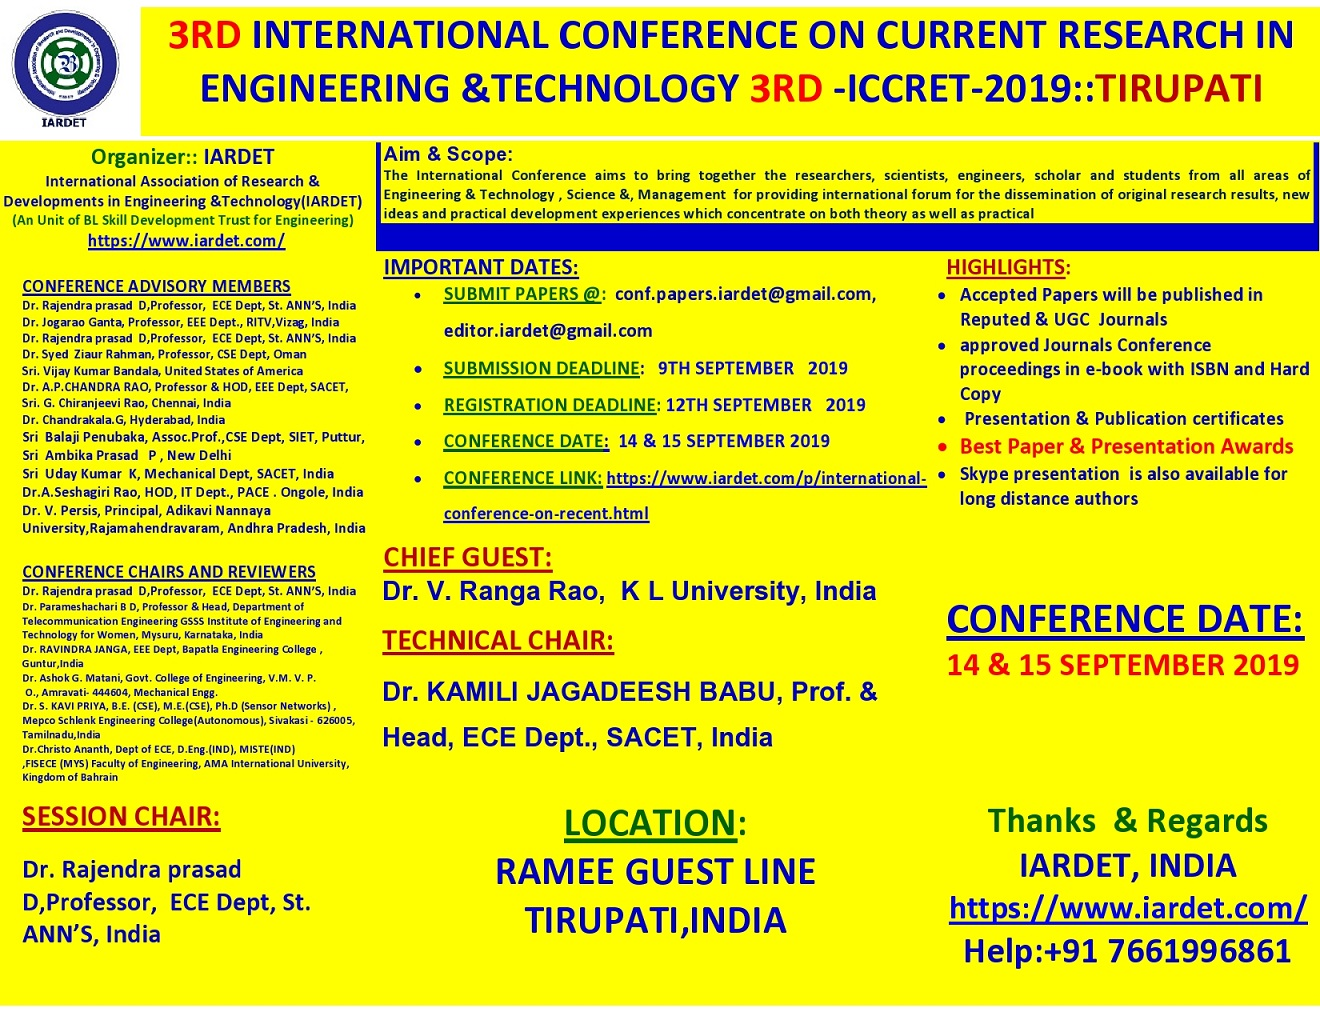 3rd International Conference on Current Research in Engineering and Technology ICCRET 2019